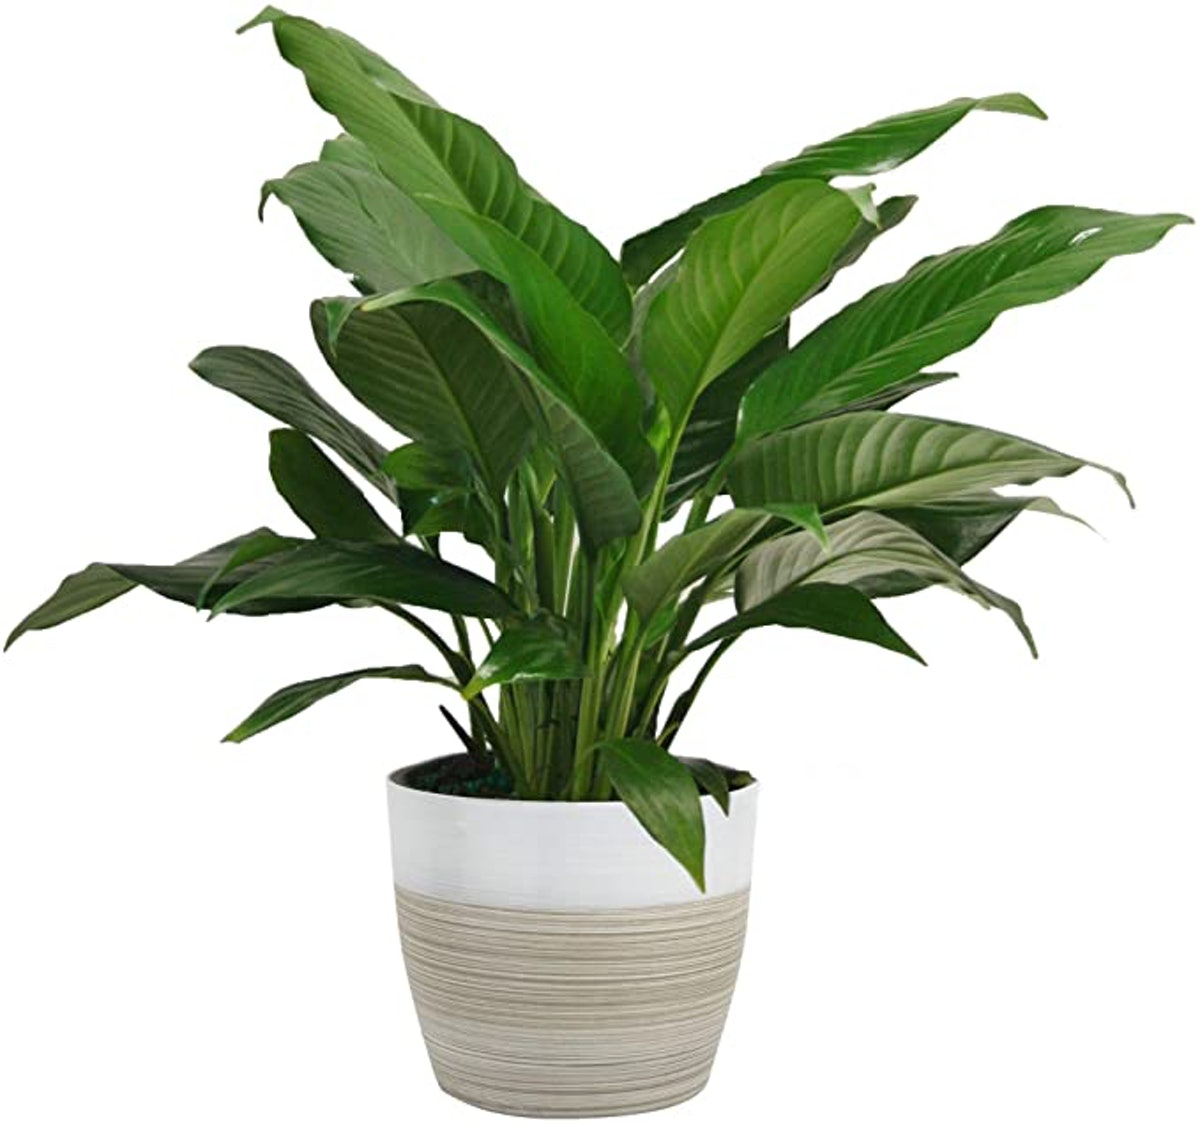 Costa Farms Spathiphyllum Peace Lily Live Indoor Plant (15-Inch)